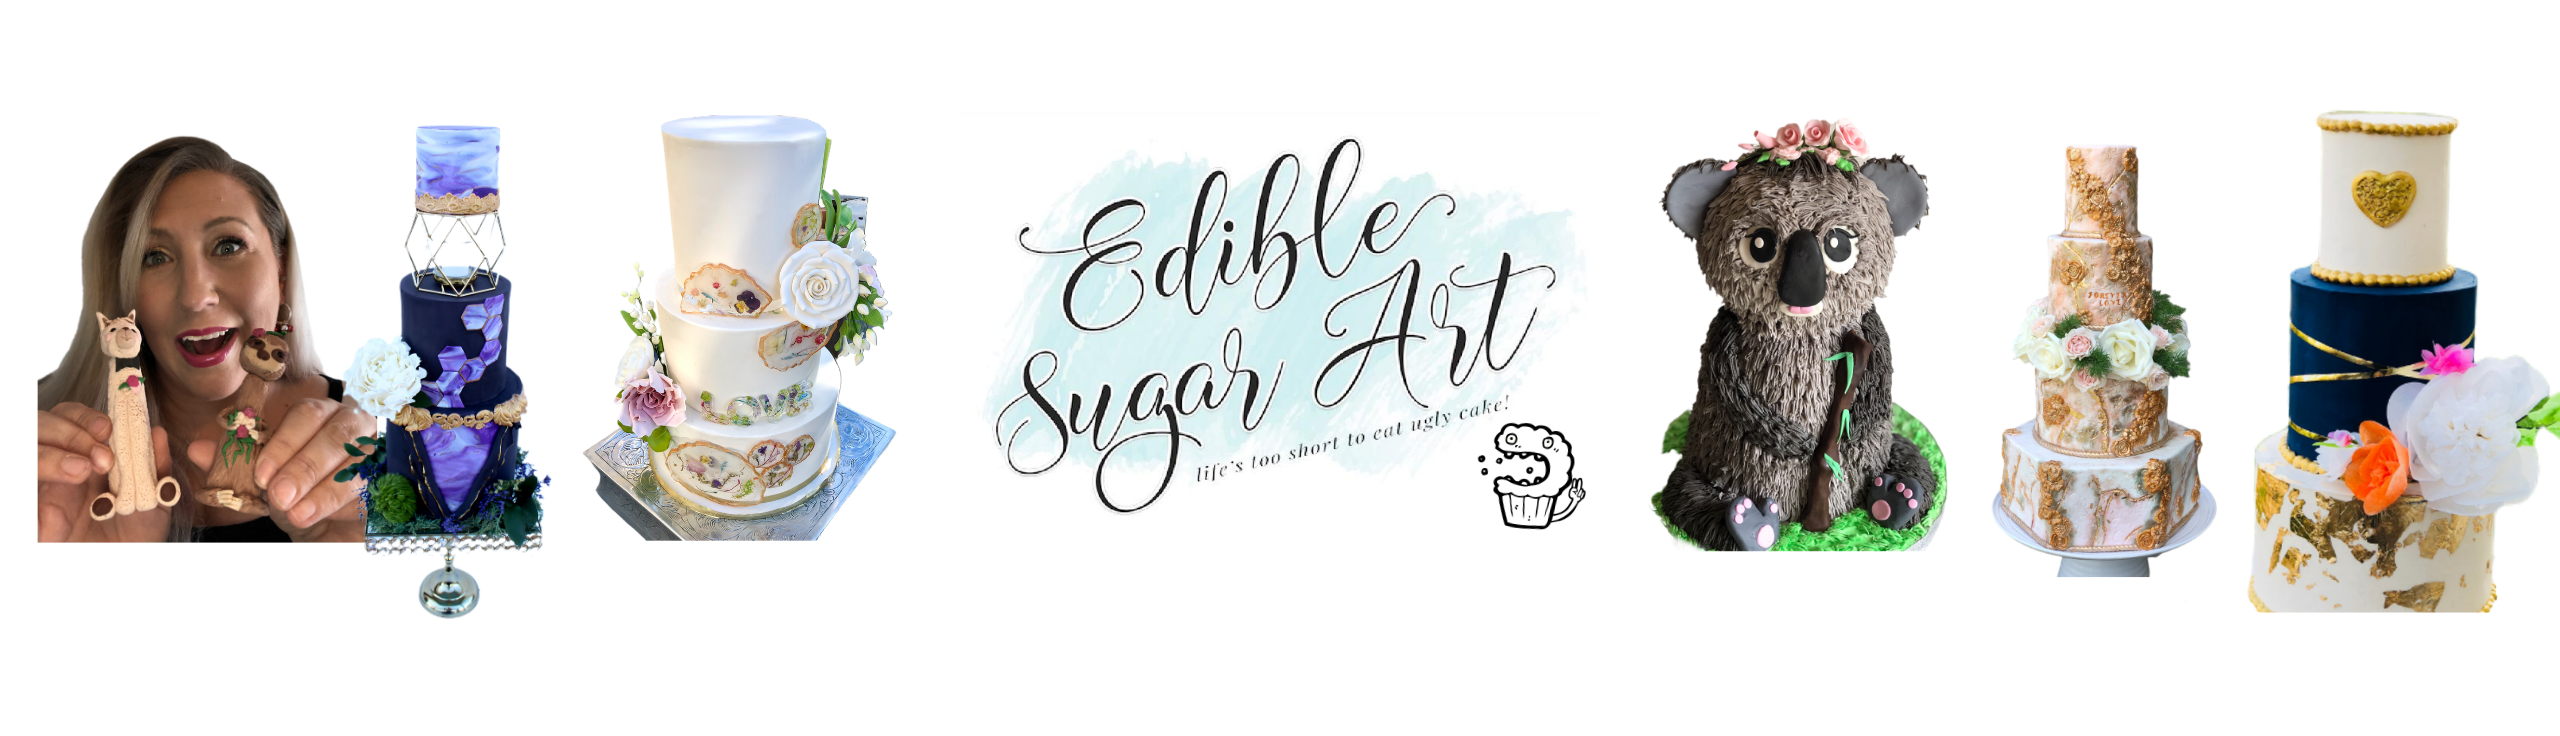 edible sugar art